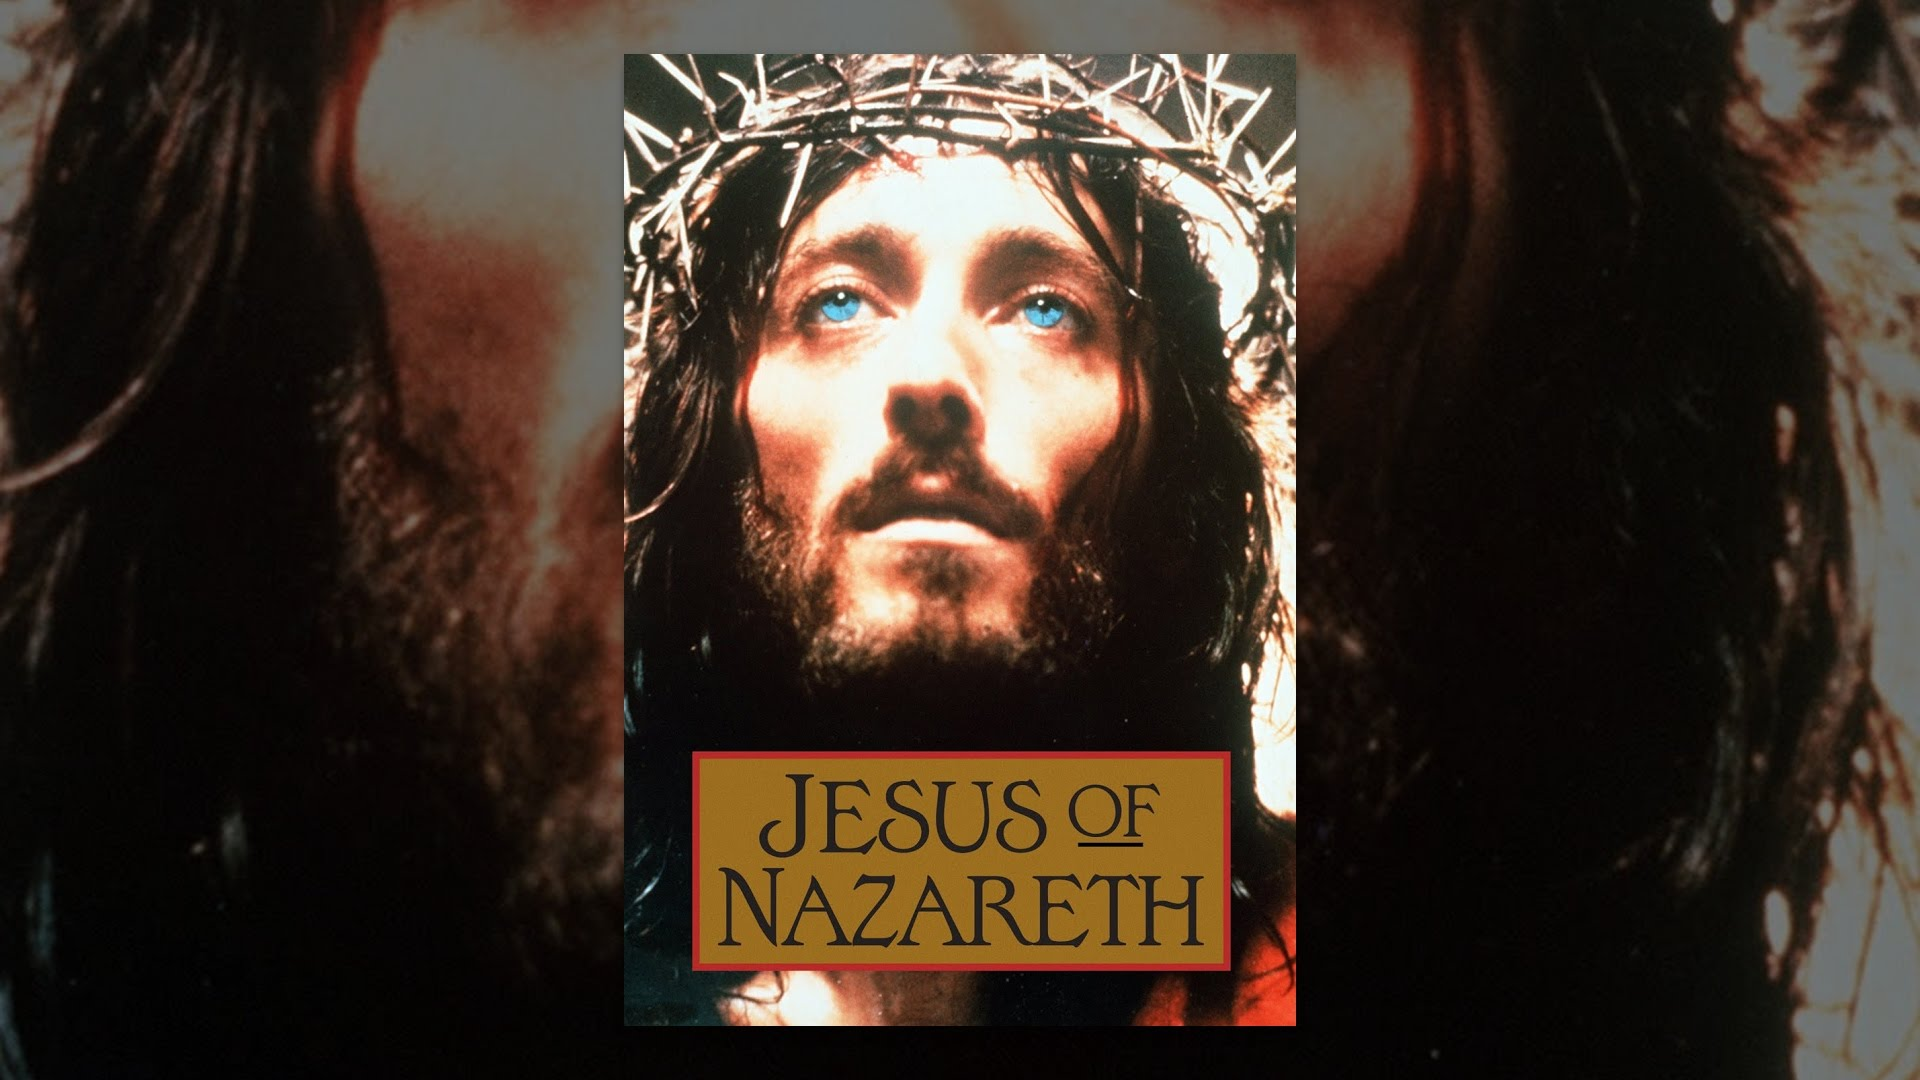 jesus of nazareth Photo request fulfilled thank you for fulfilling this photo request an email has been sent to the person who requested the photo informing them that you have fulfilled their request.